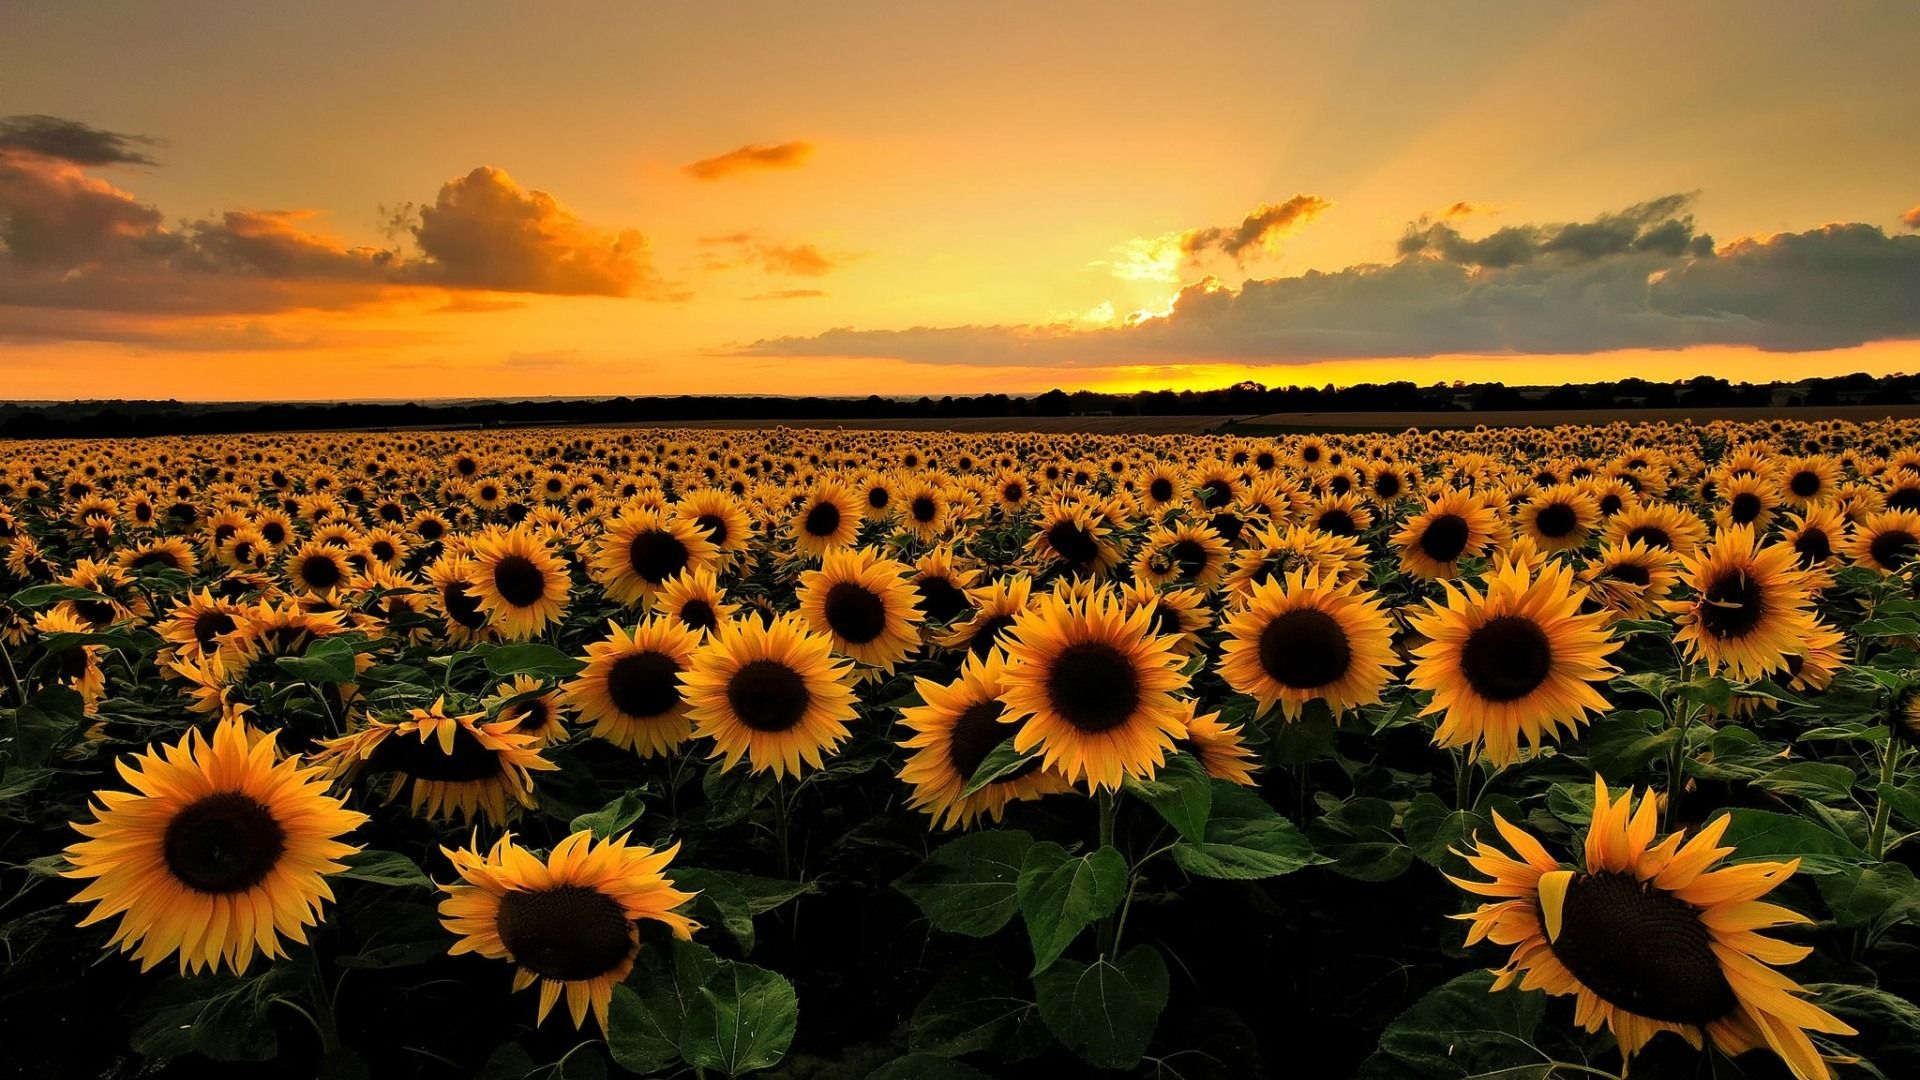 Desktop Backgrounds Sunflowers Download Lovely Sunflowers Wallpaper Hd Images New Regarding Desk Field Wallpaper Sunflower Wallpaper Sunflower Wallpaper Hd